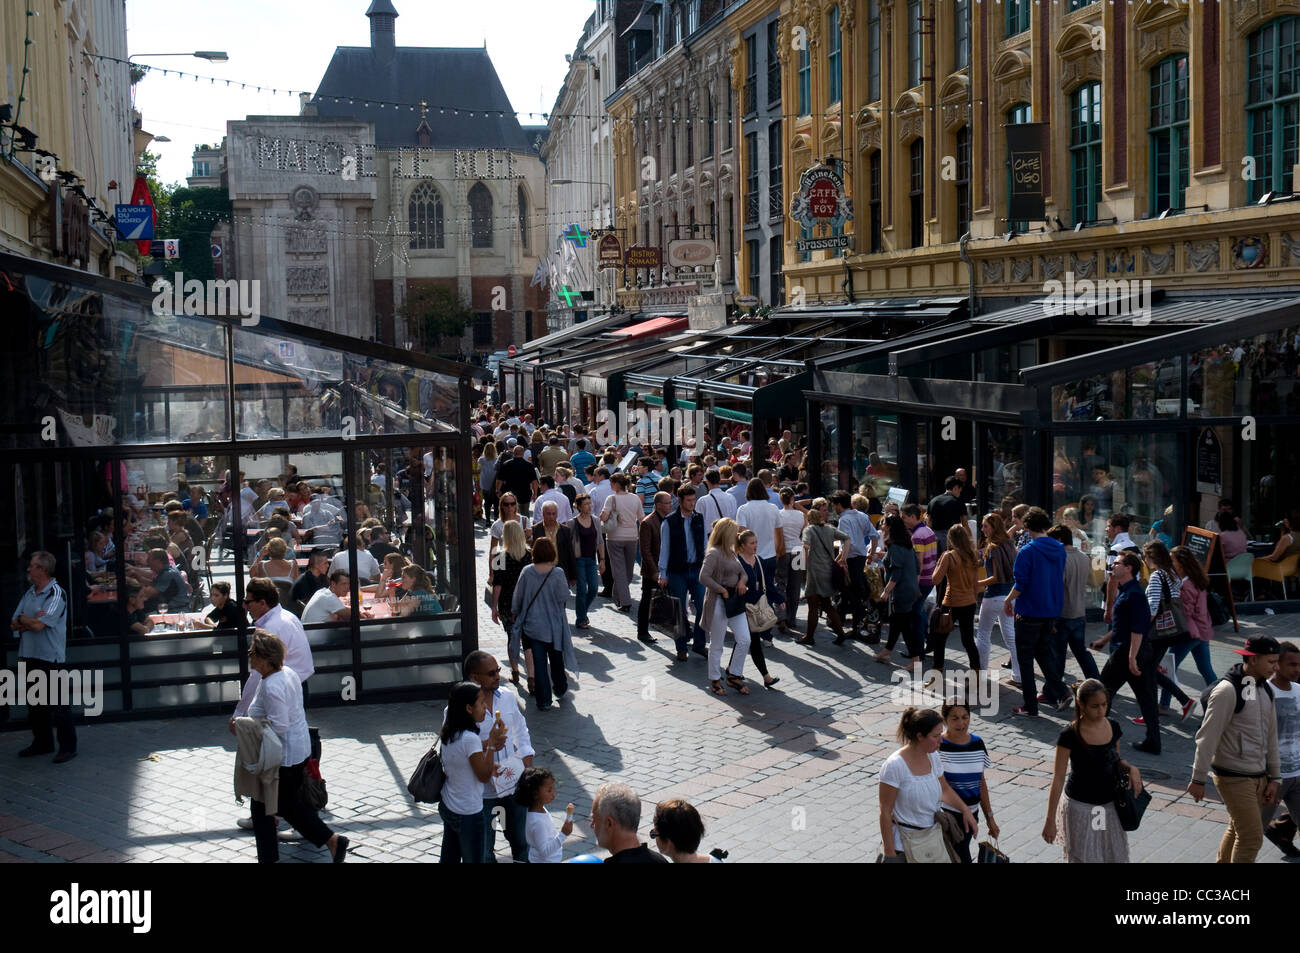 Tourists and locals pass along Pl. Rihour, Lille, France looking at the restaurants and cafés. - Stock Image